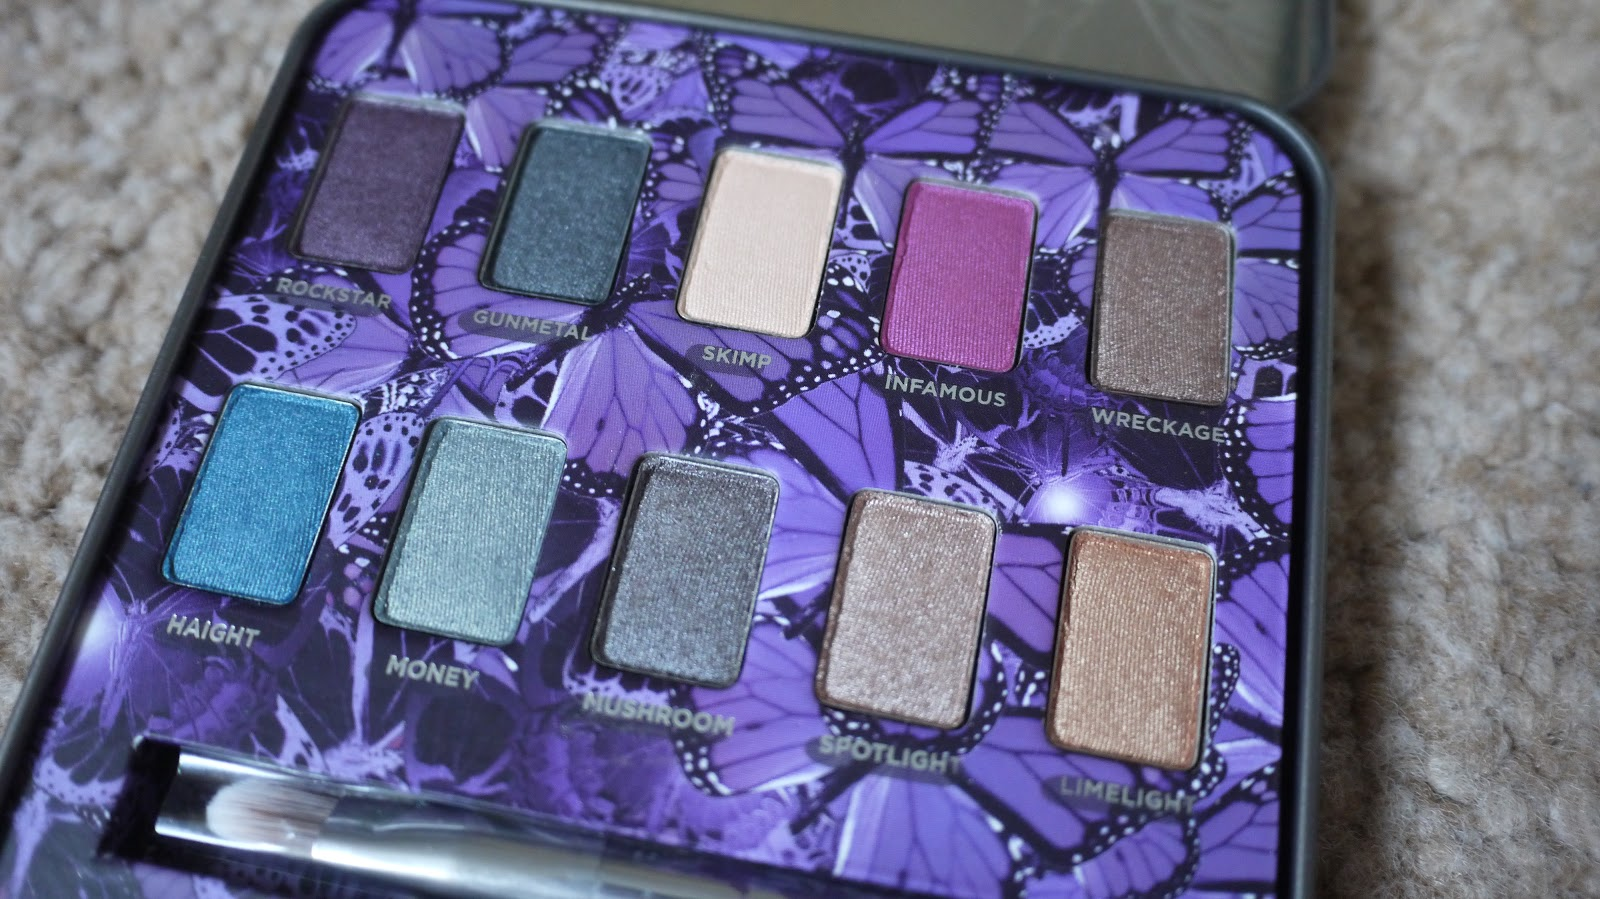 urban decay mariposa eyeshadow palette lux life london